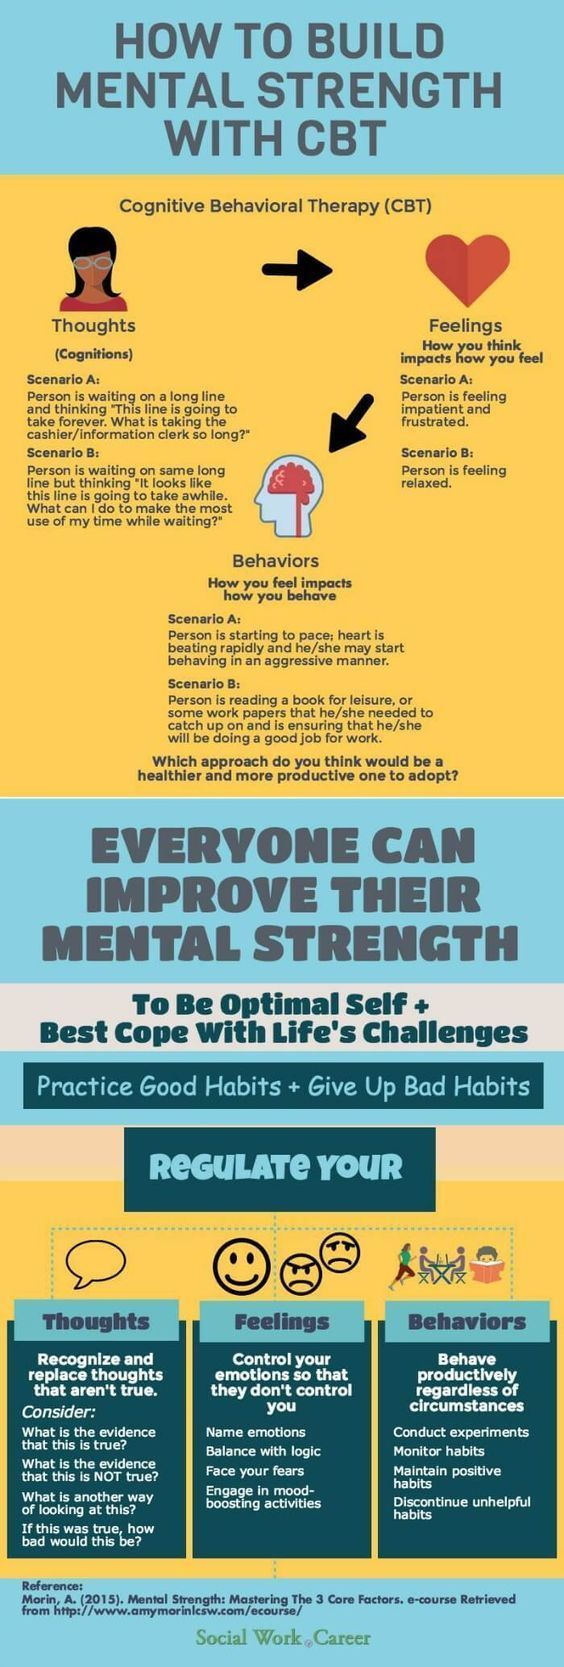 How to Build Mental Strength (Even If You're Overwhelmed) AmyMorin, resilience, CBT Cognitive Behavioral Therapy